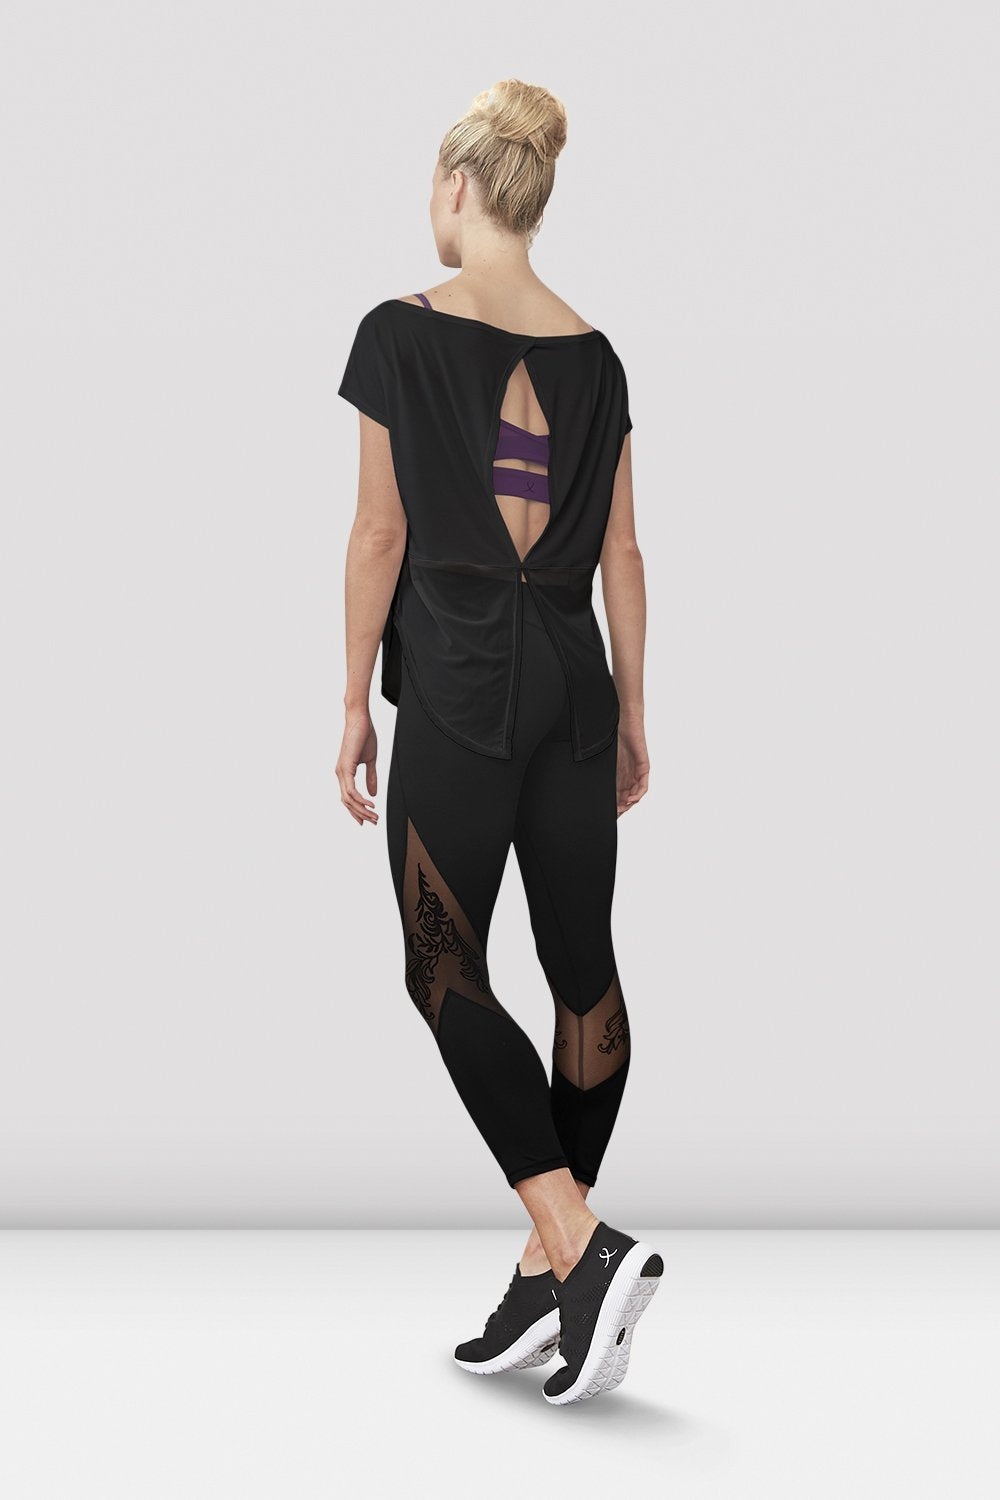 Black Bloch Ladies Saori Mesh Panel Legging on female model left level beveled facing upstage right